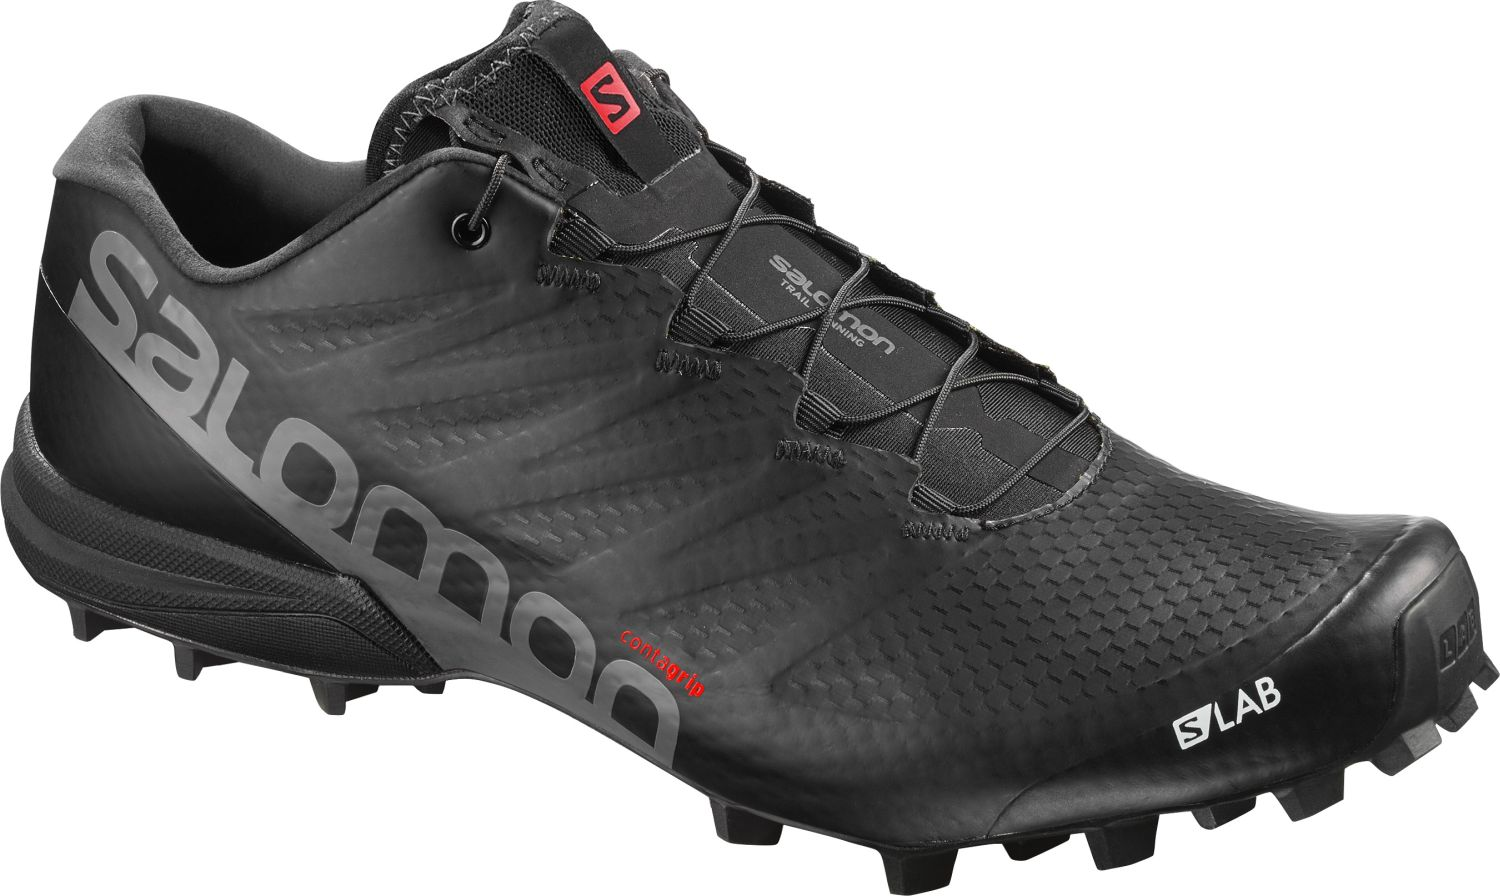 Salomon Pantofi alergare Salomon S Lab Sense Ultra 2